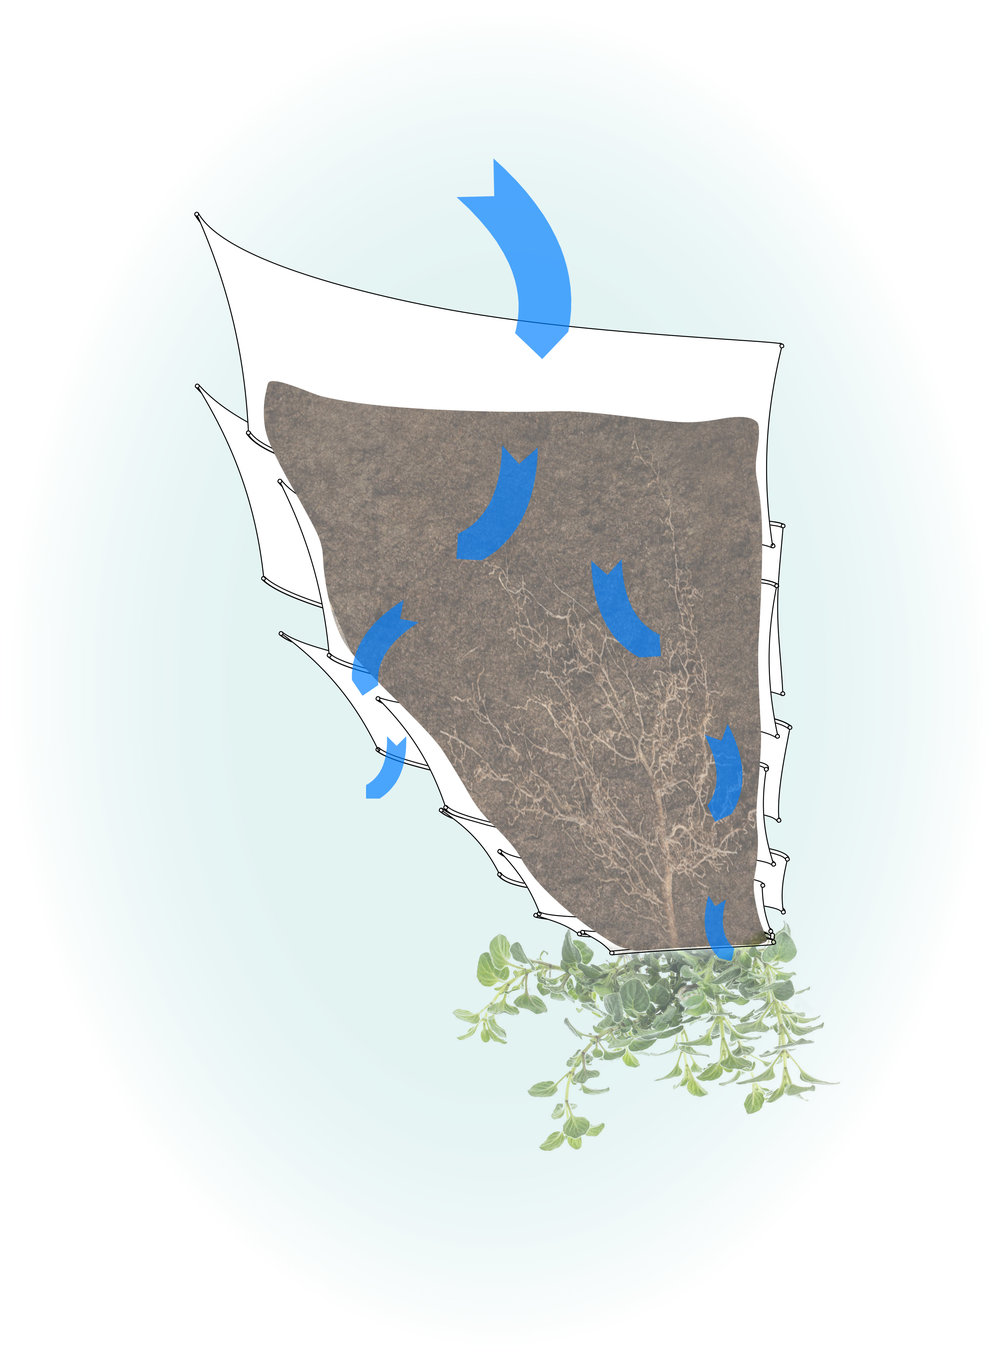 This diagram shows the two main paths that the water can drain out of the planter- between the two layers of plastic and out the bottom hole